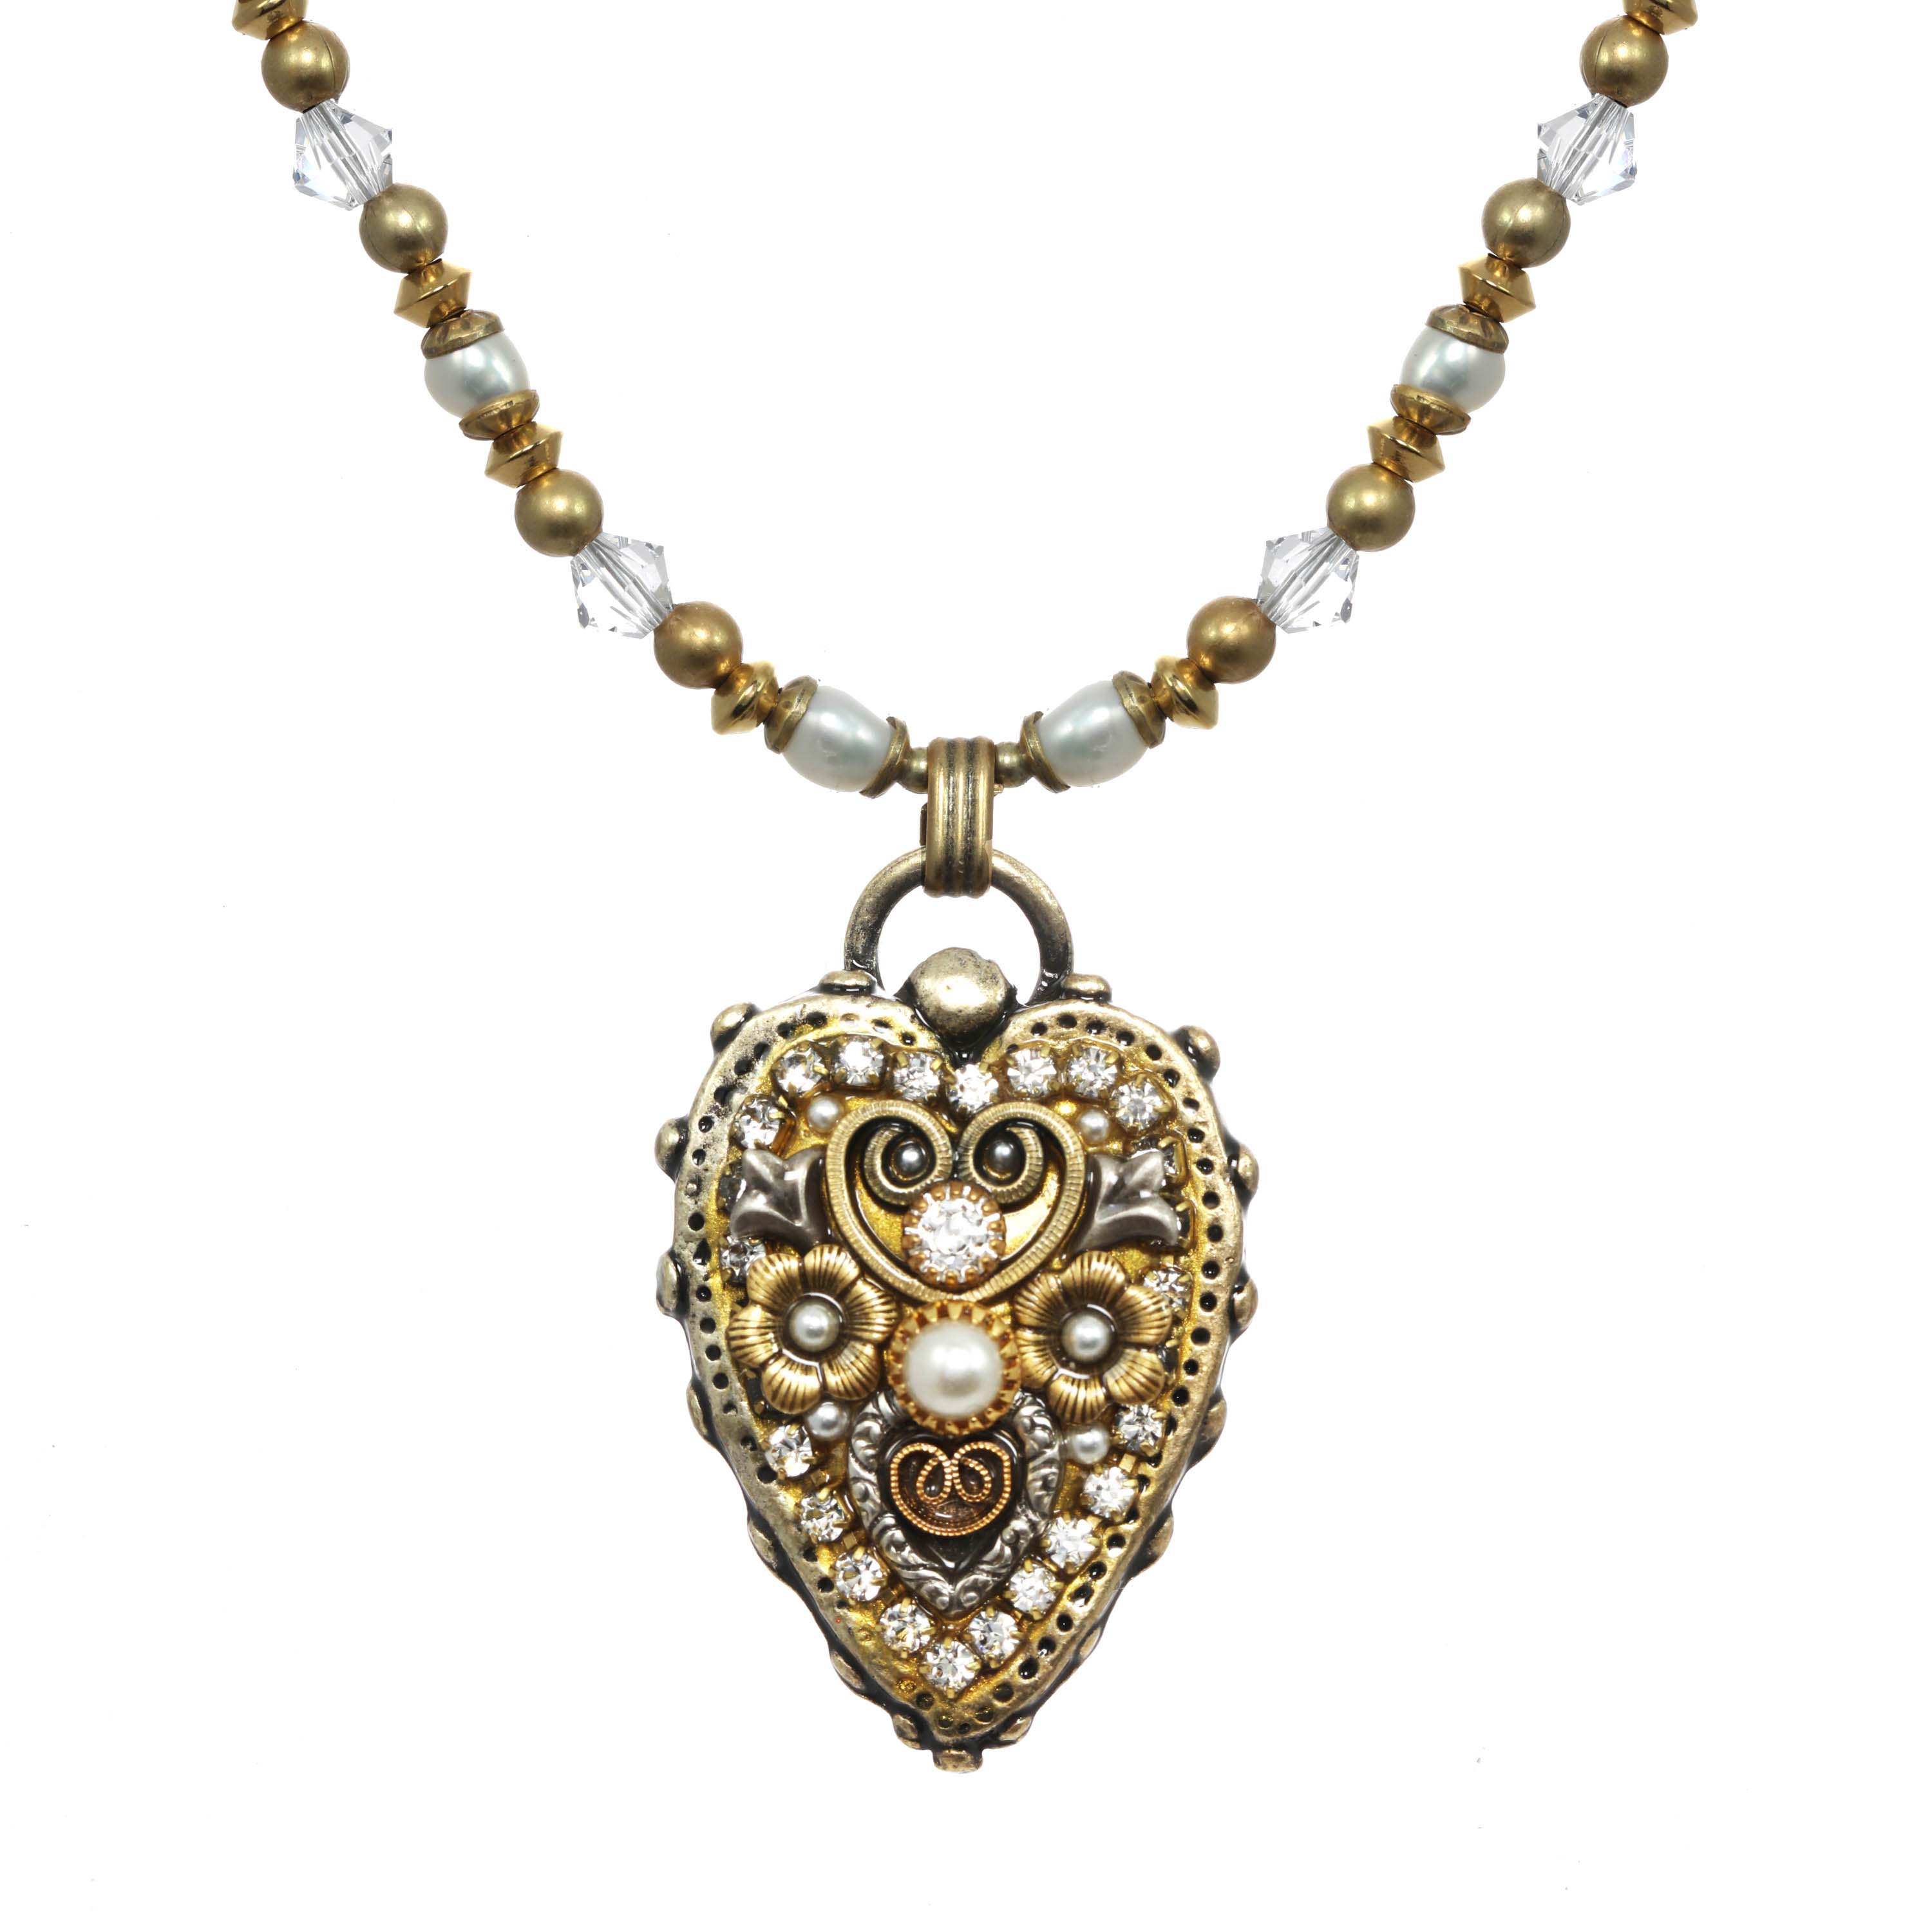 Classic Crystal Heart Necklace